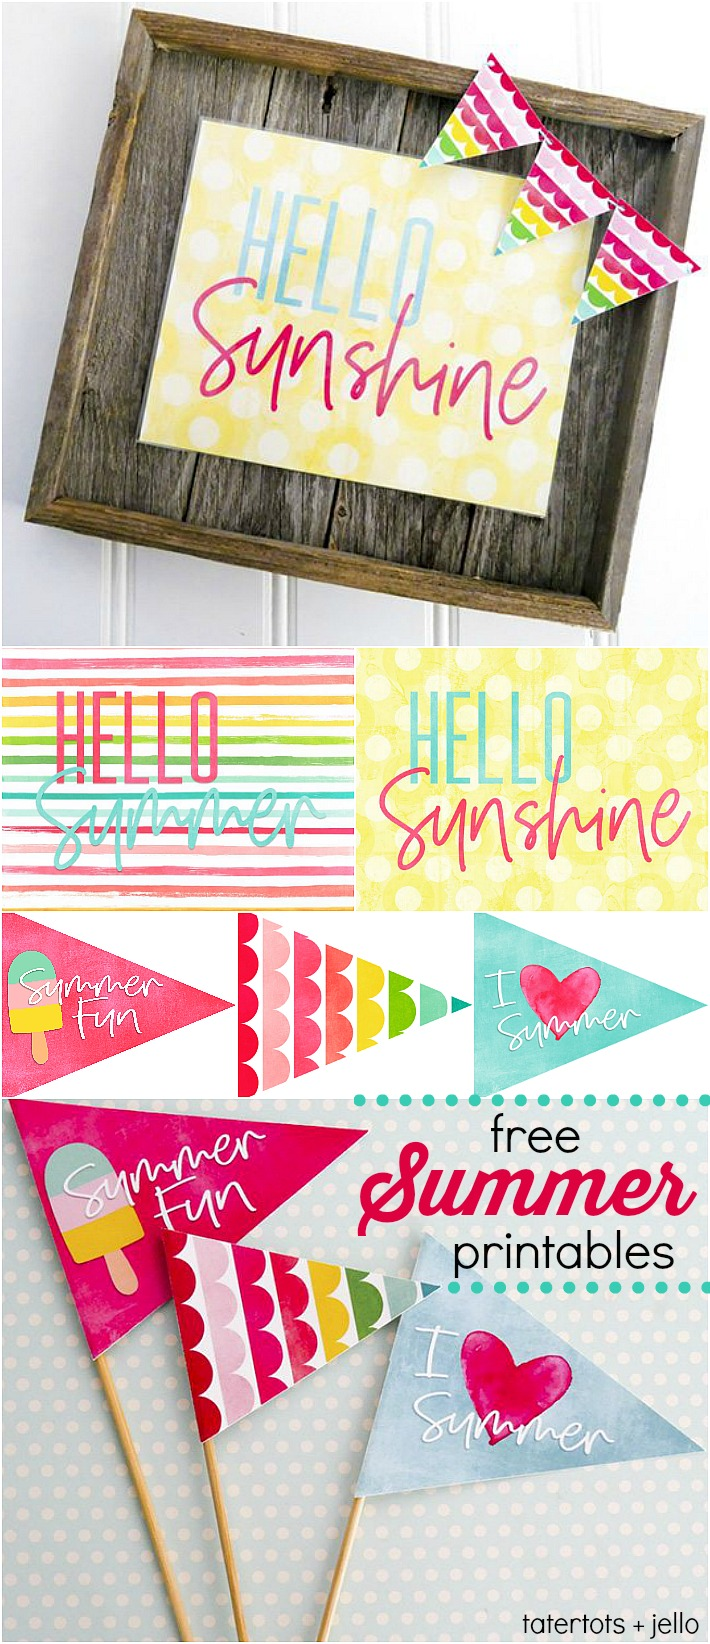 free summer printables for decorating and parties